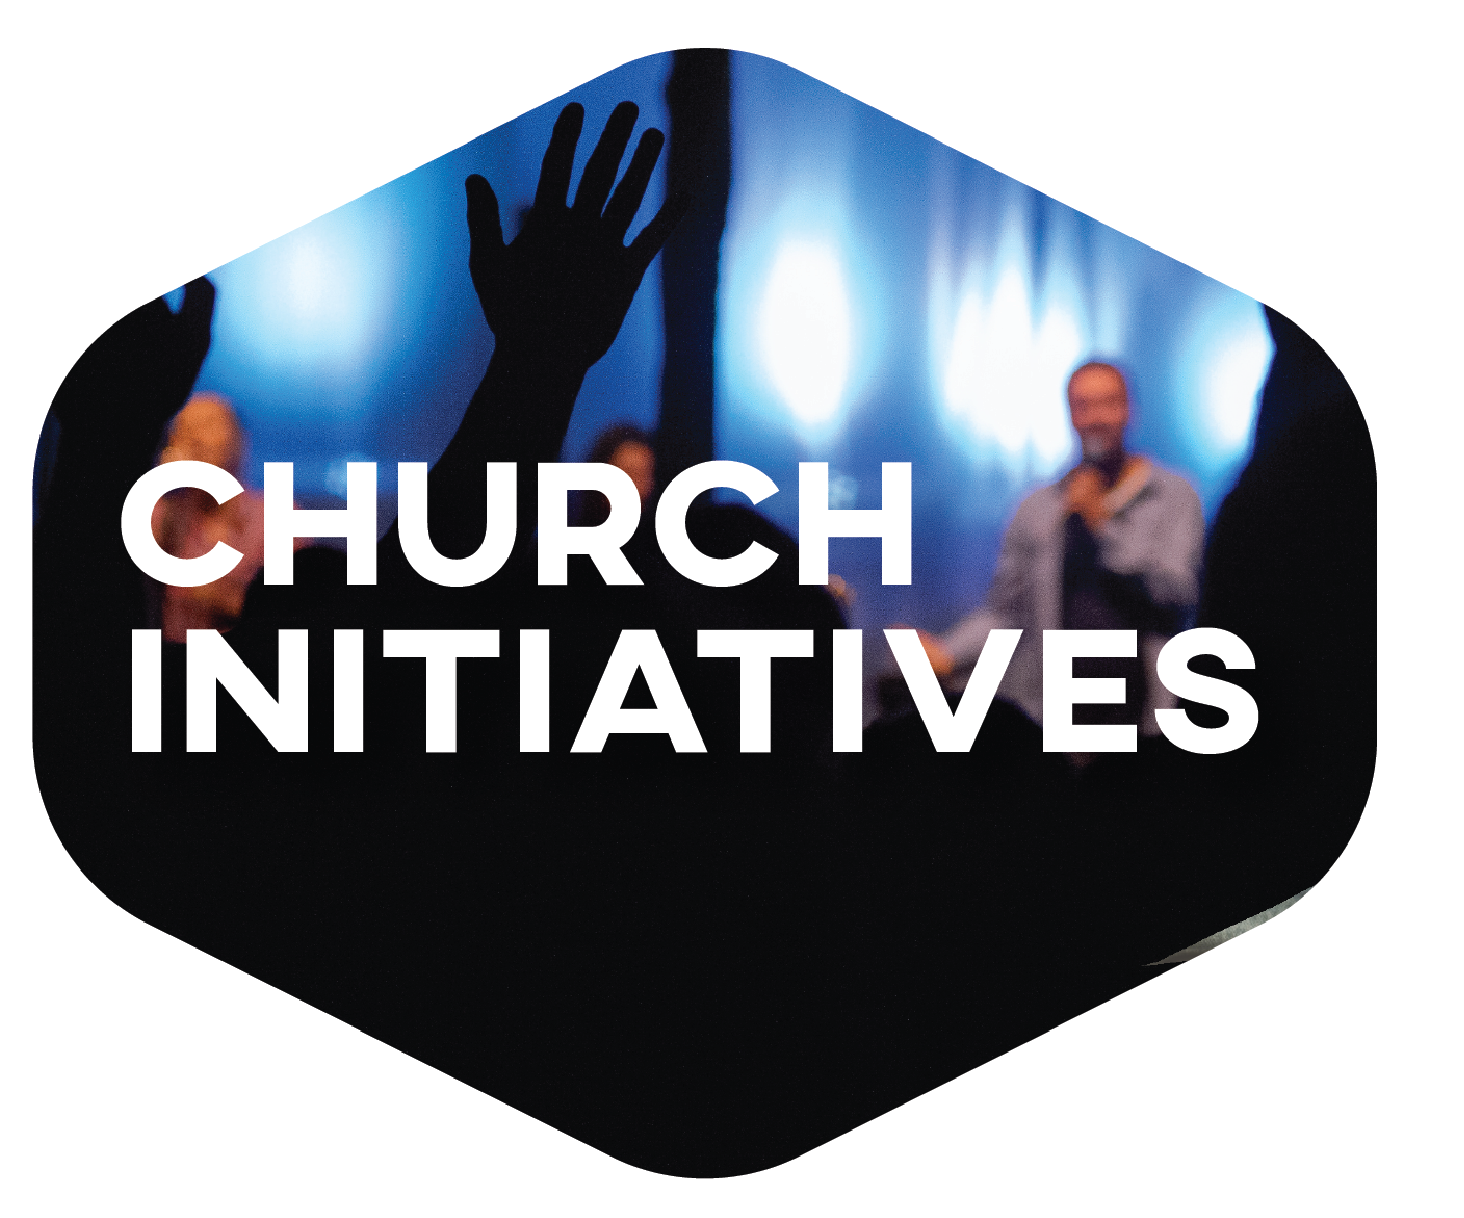 ONE Pearland is committed to partnering with Local Churches through providing Church Prayer assessments, Strategic and personalized calls to prayer and prayer guides, prayer ministry training and more.